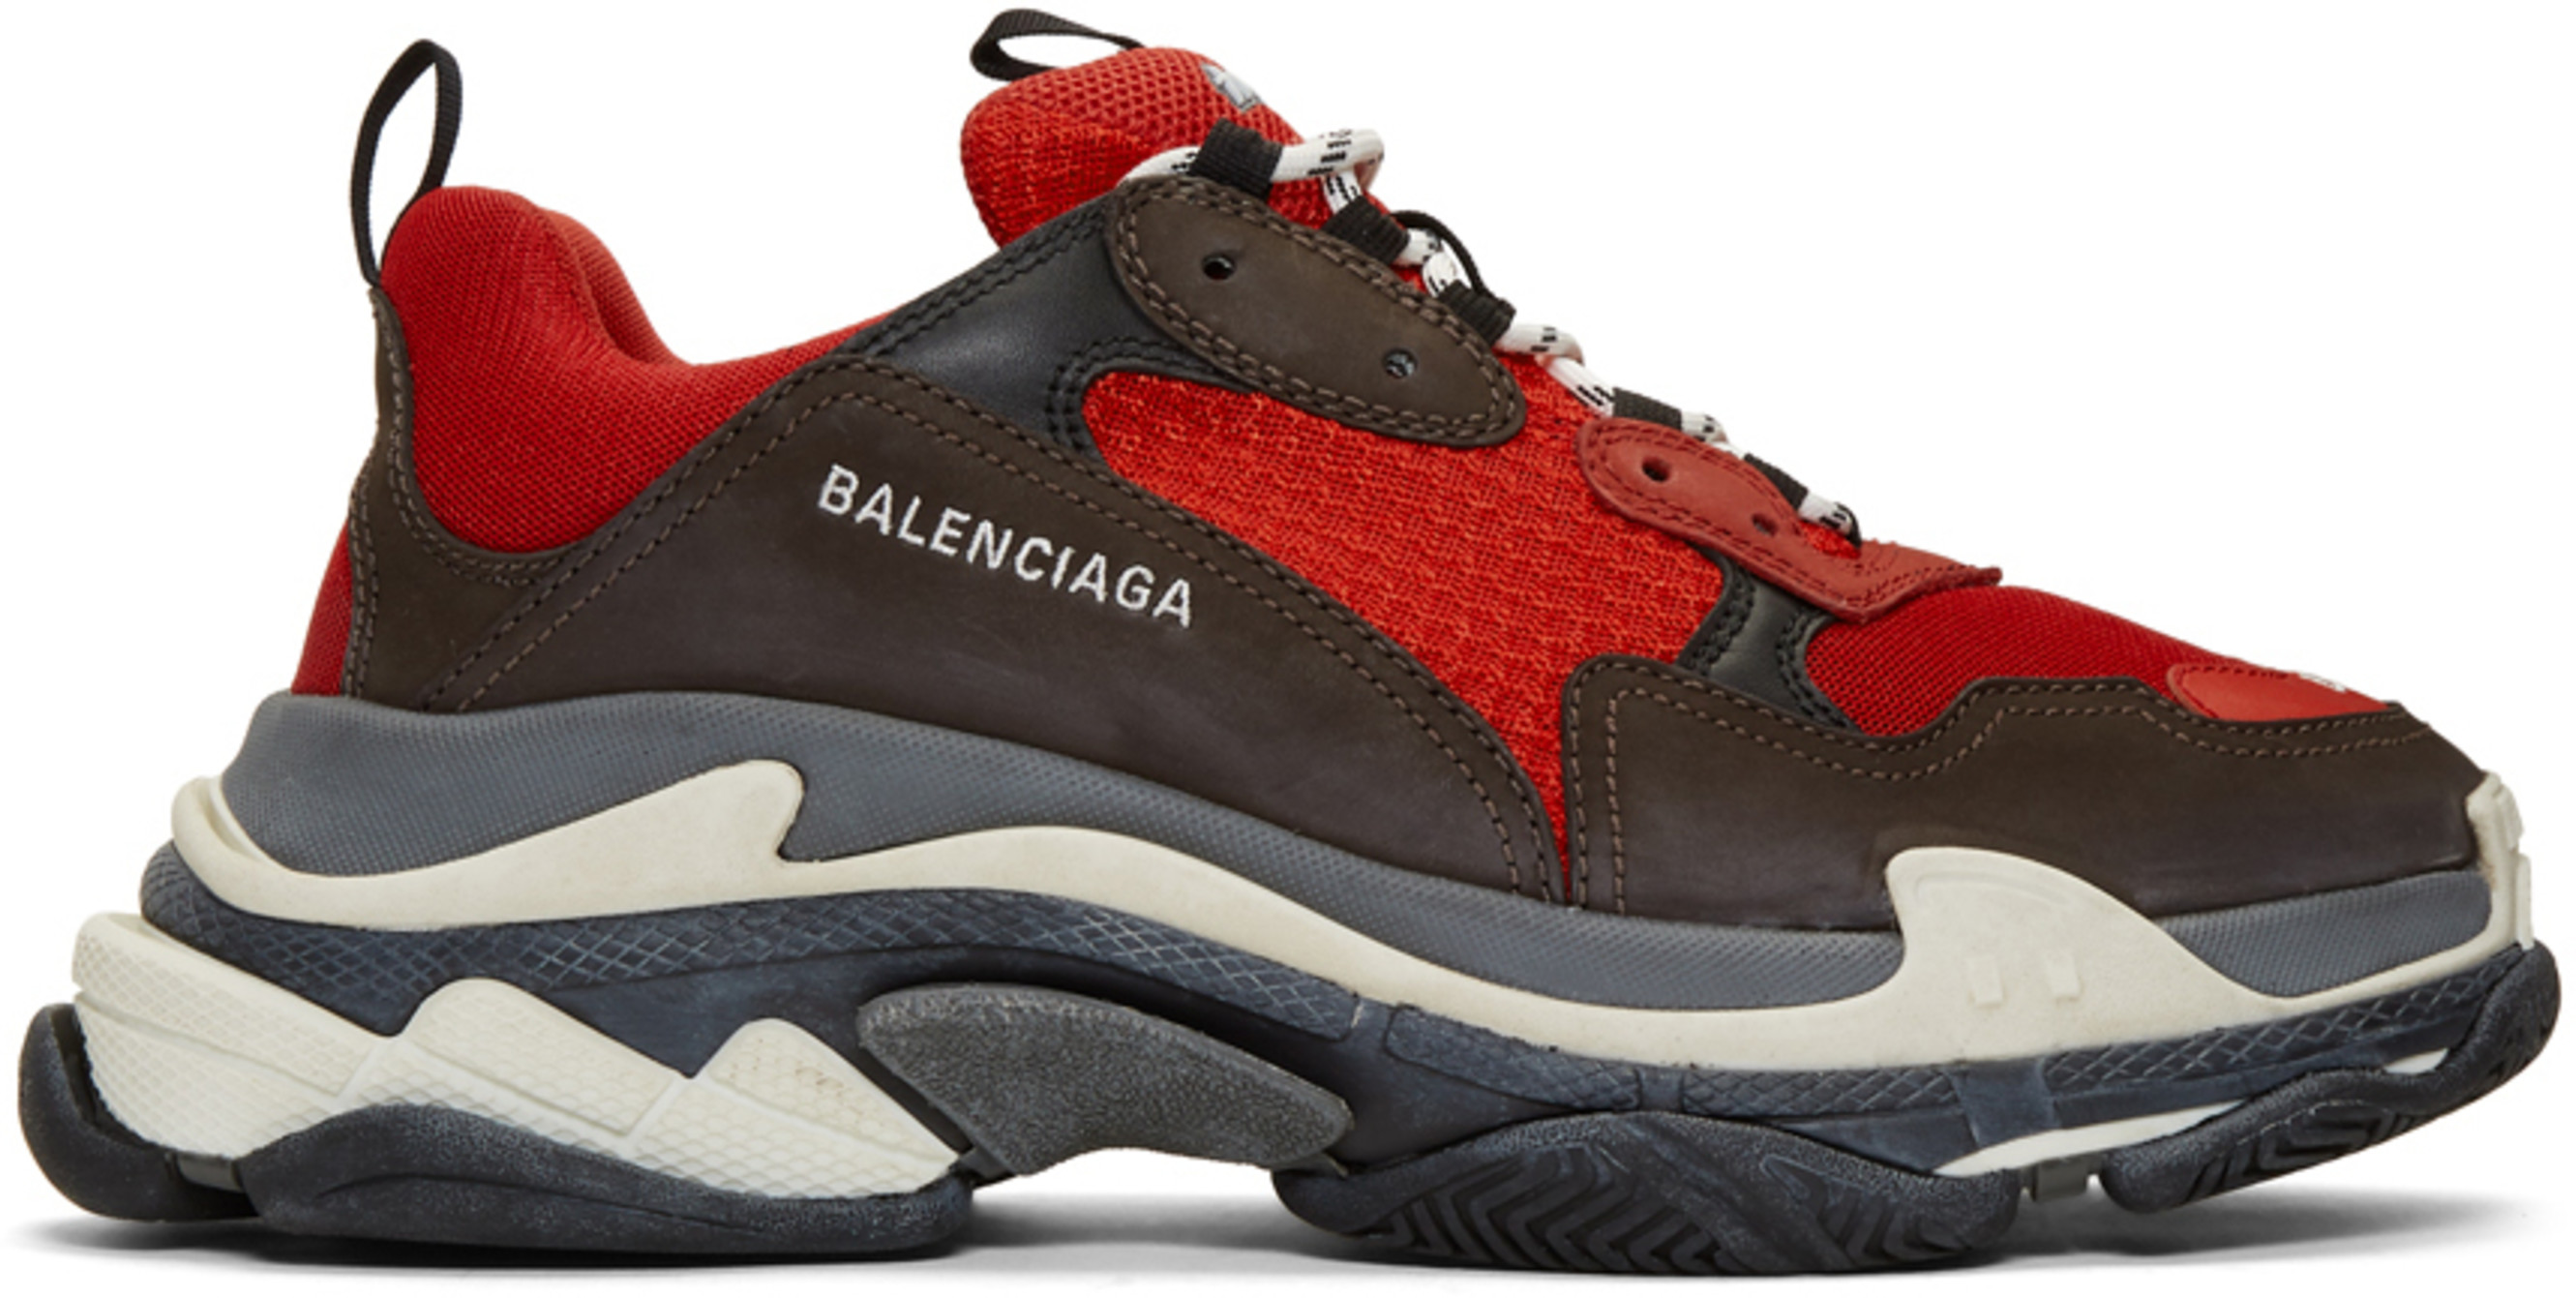 9acc25c7d214 Balenciaga shoes for Men